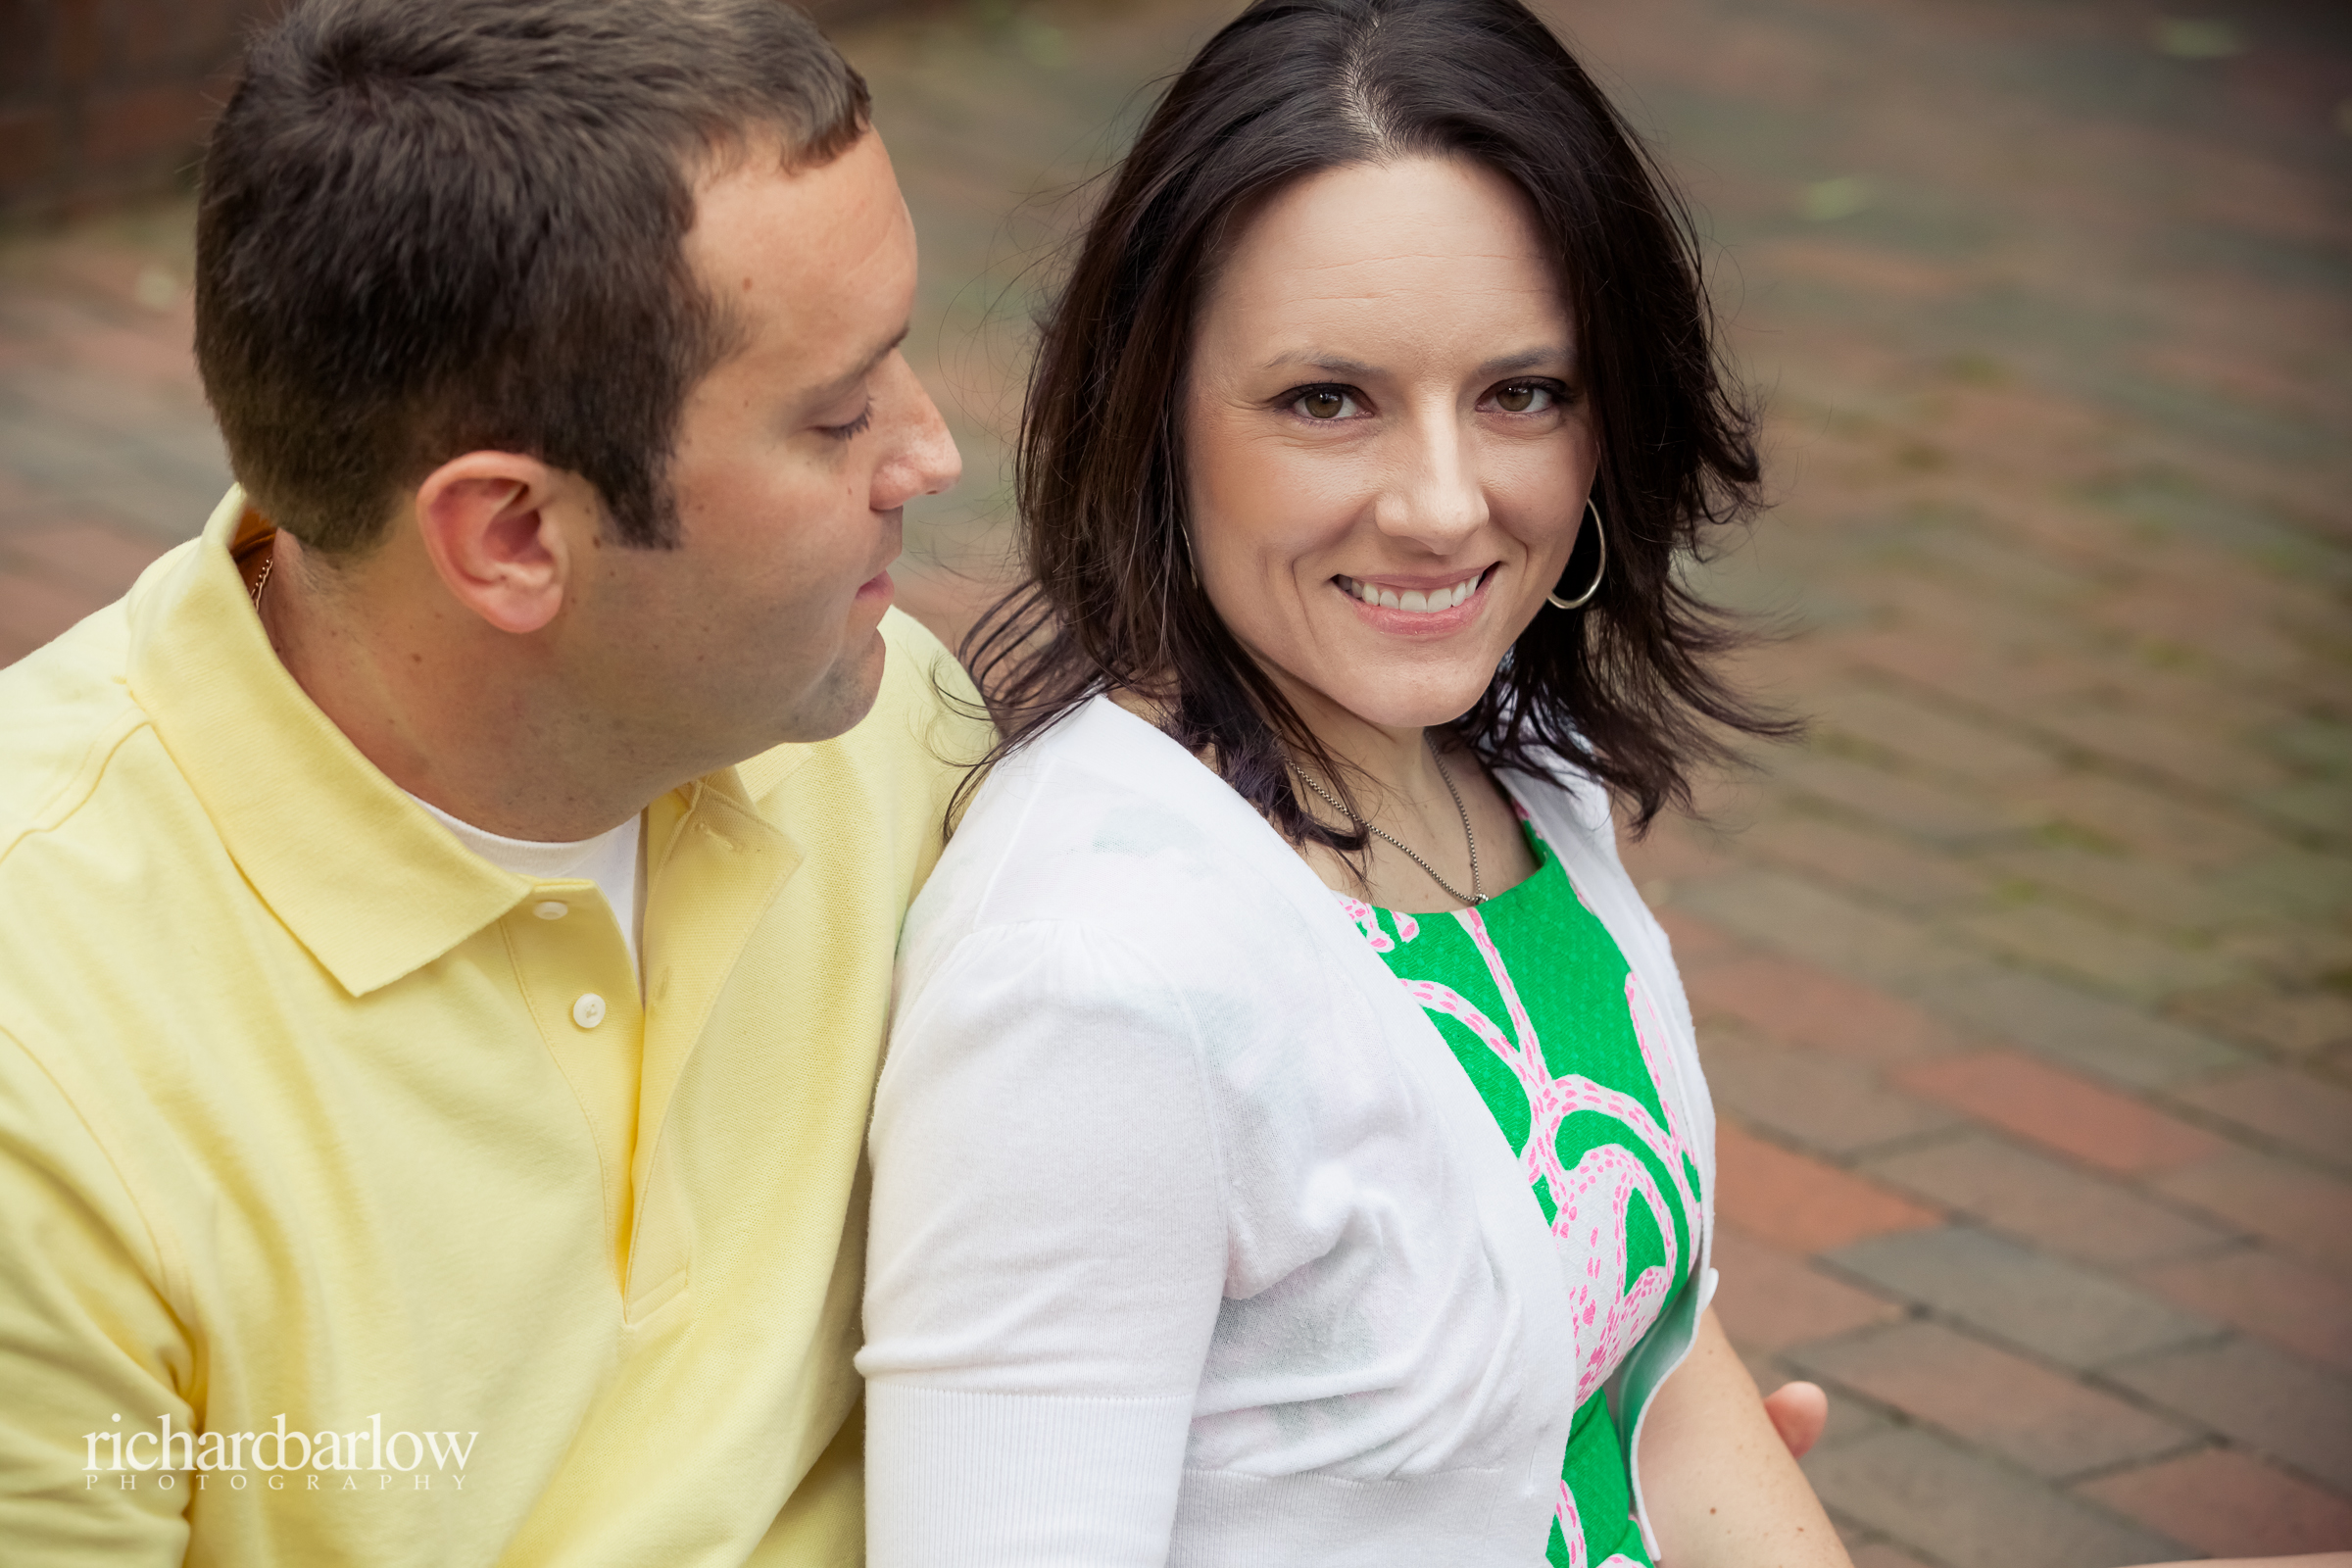 richard barlow photography - Jason and Karen Engagement Session NC State-5.jpg